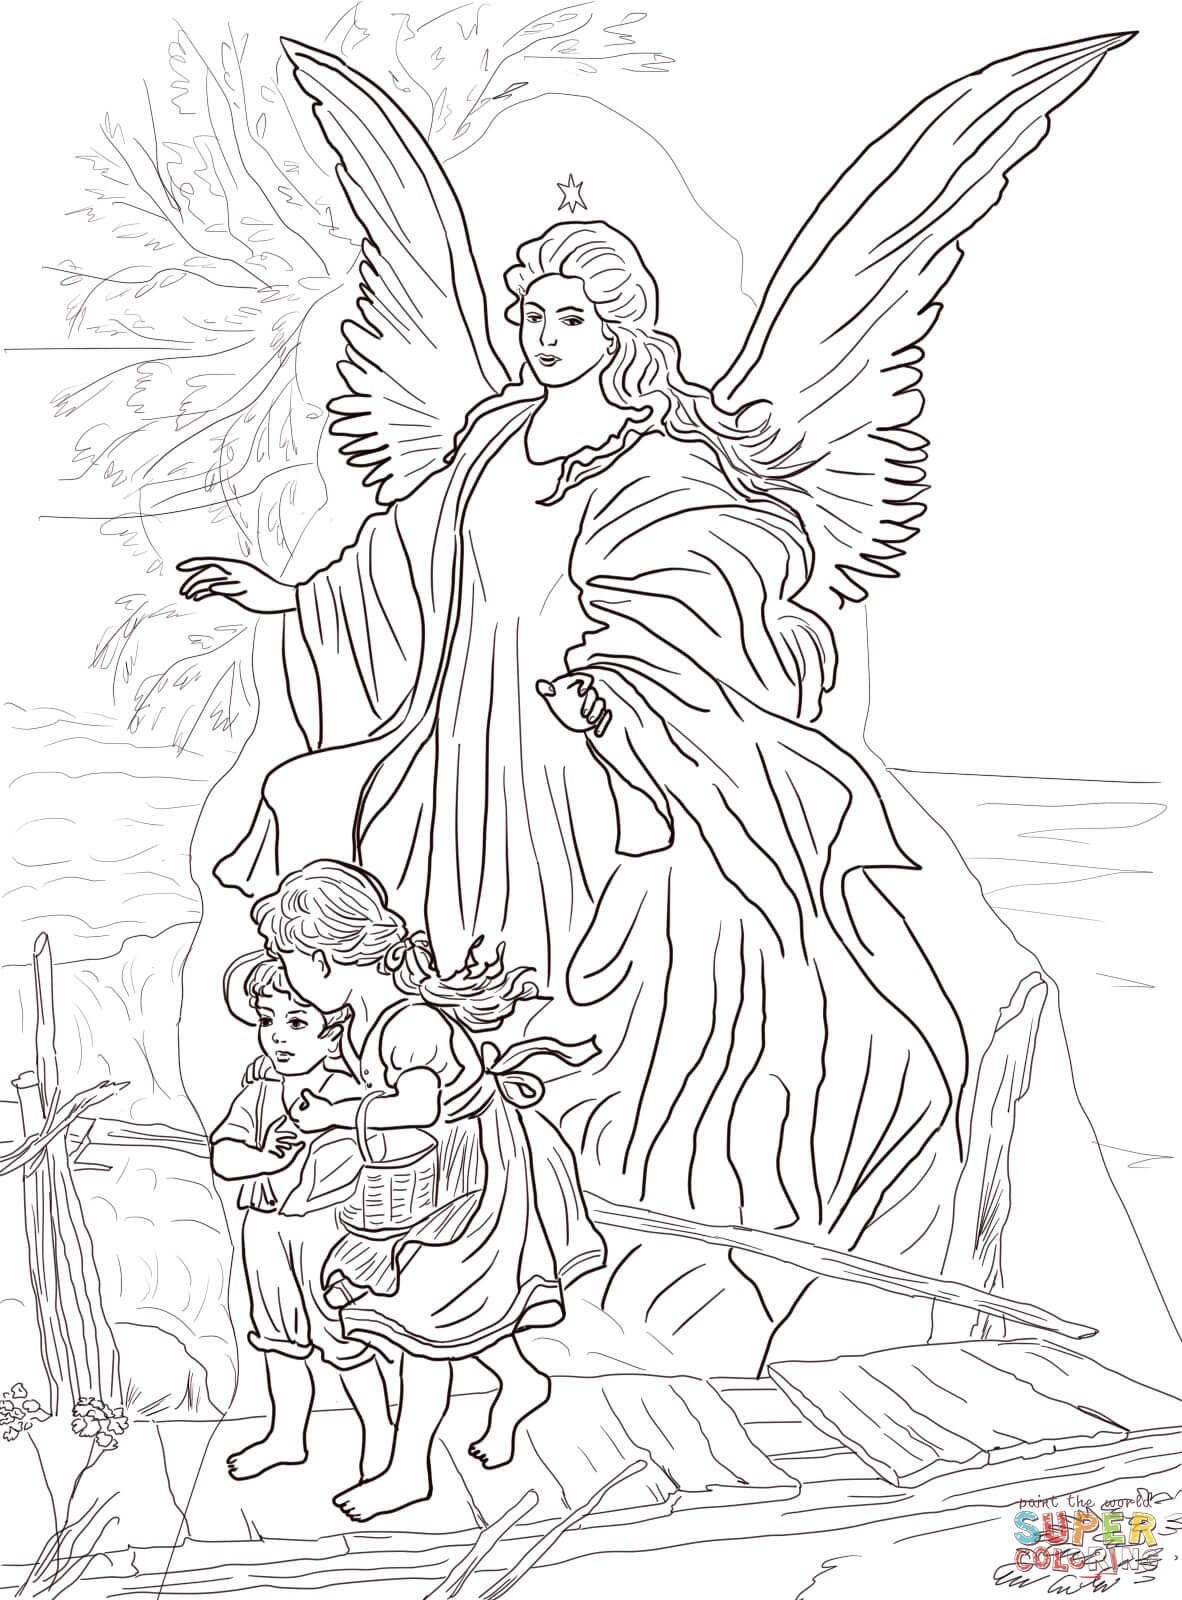 Children Are Protectedguardian Angel Coloring Page | Free - Free Printable Pictures Of Angels